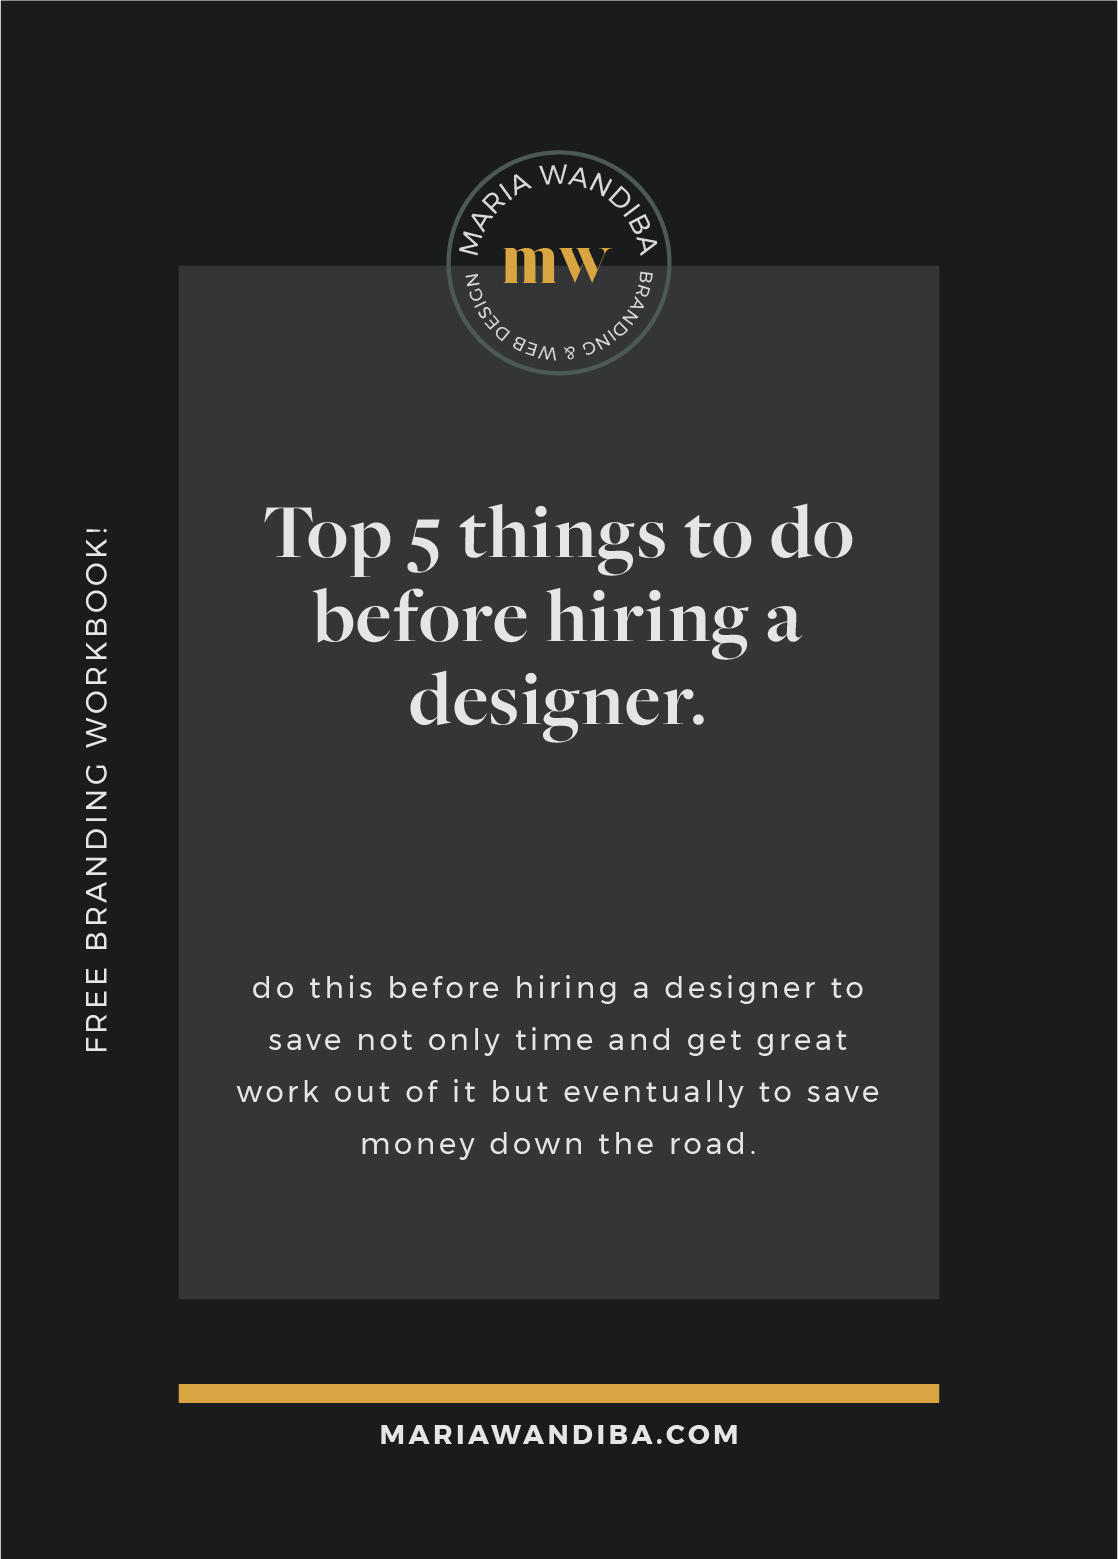 top-things-to-do-before-hiring-a-designer.png